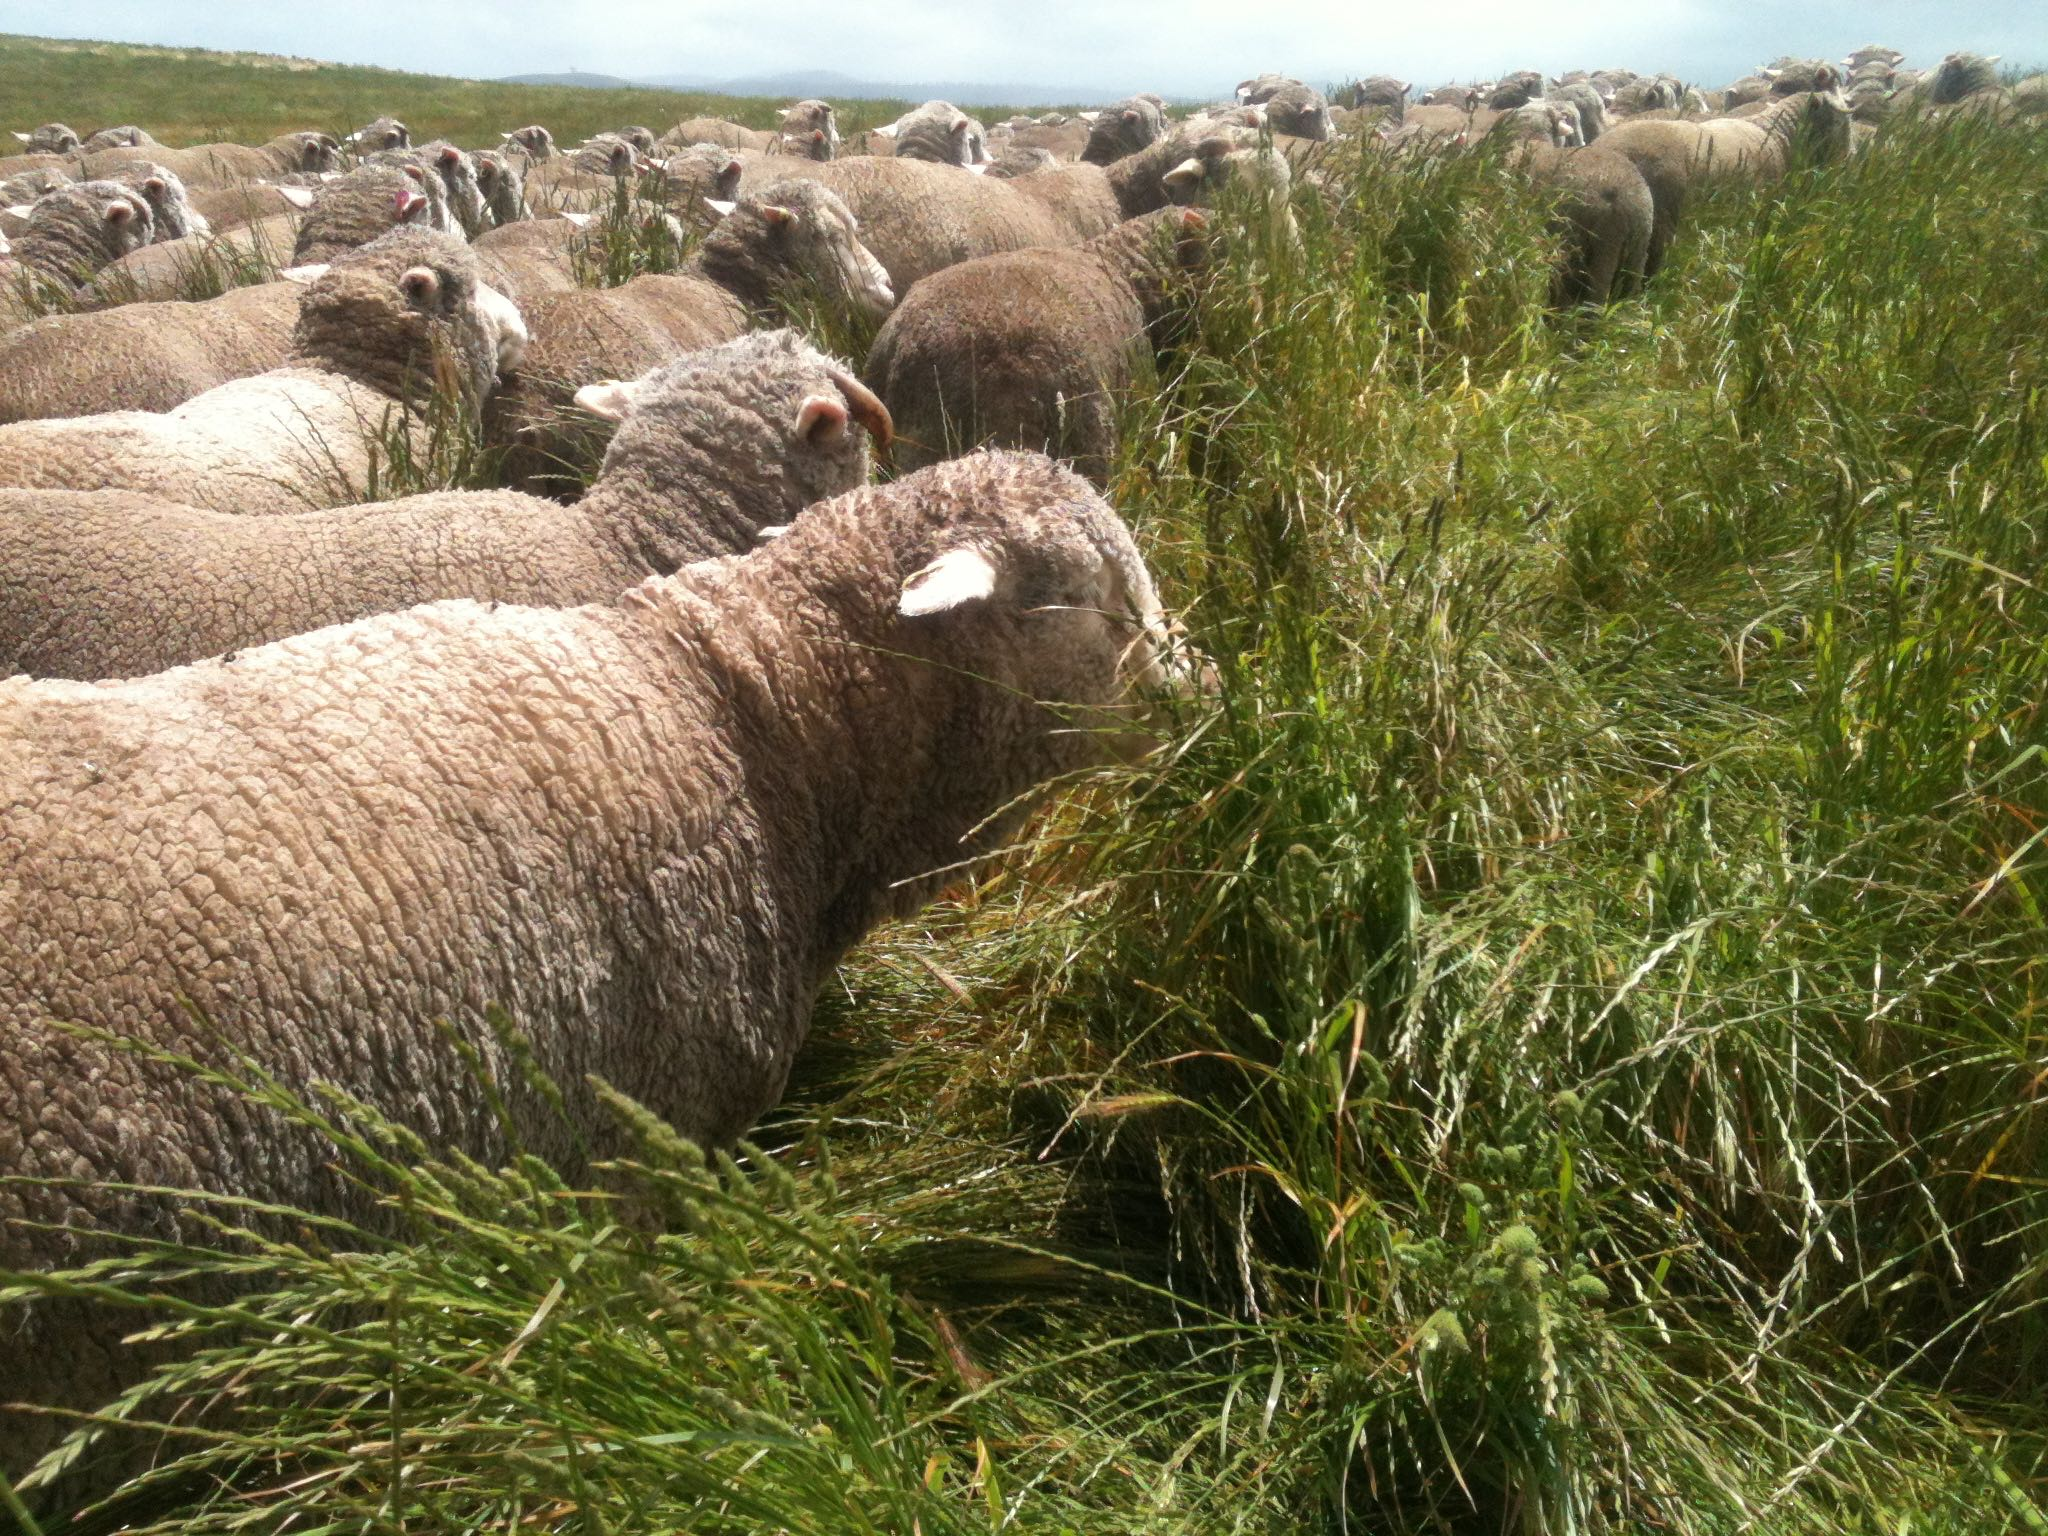 Grazing the long rye grass in one of the Racecourse Grazing Area paddocks. I think Clara is the sheep in the foreground.